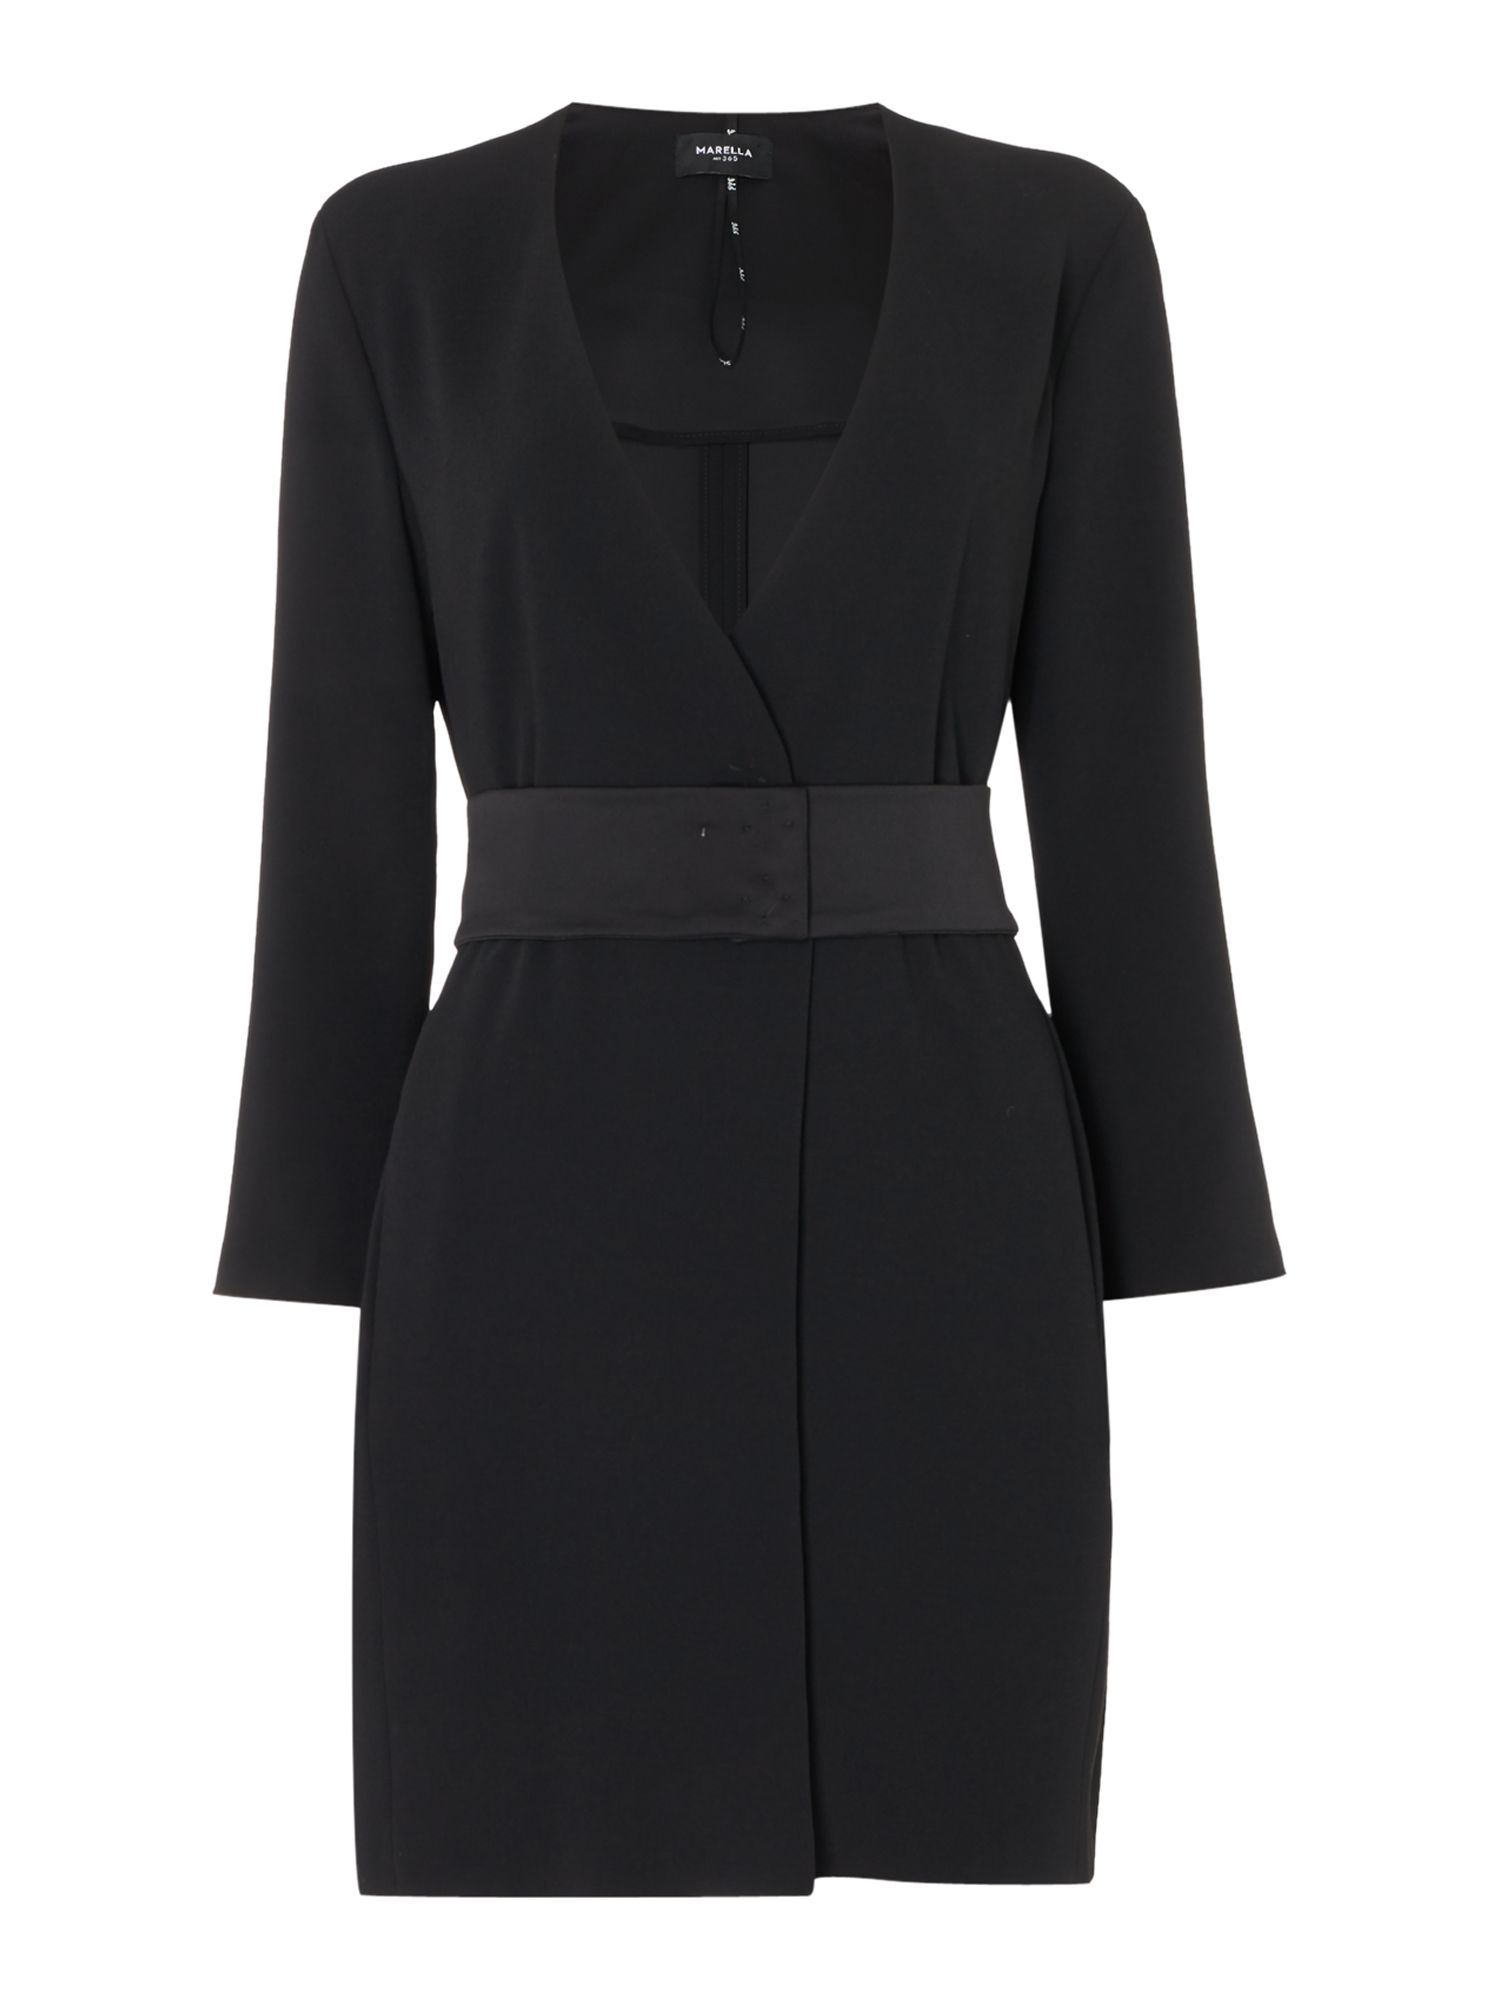 Marella Scherma black dress coat, Black